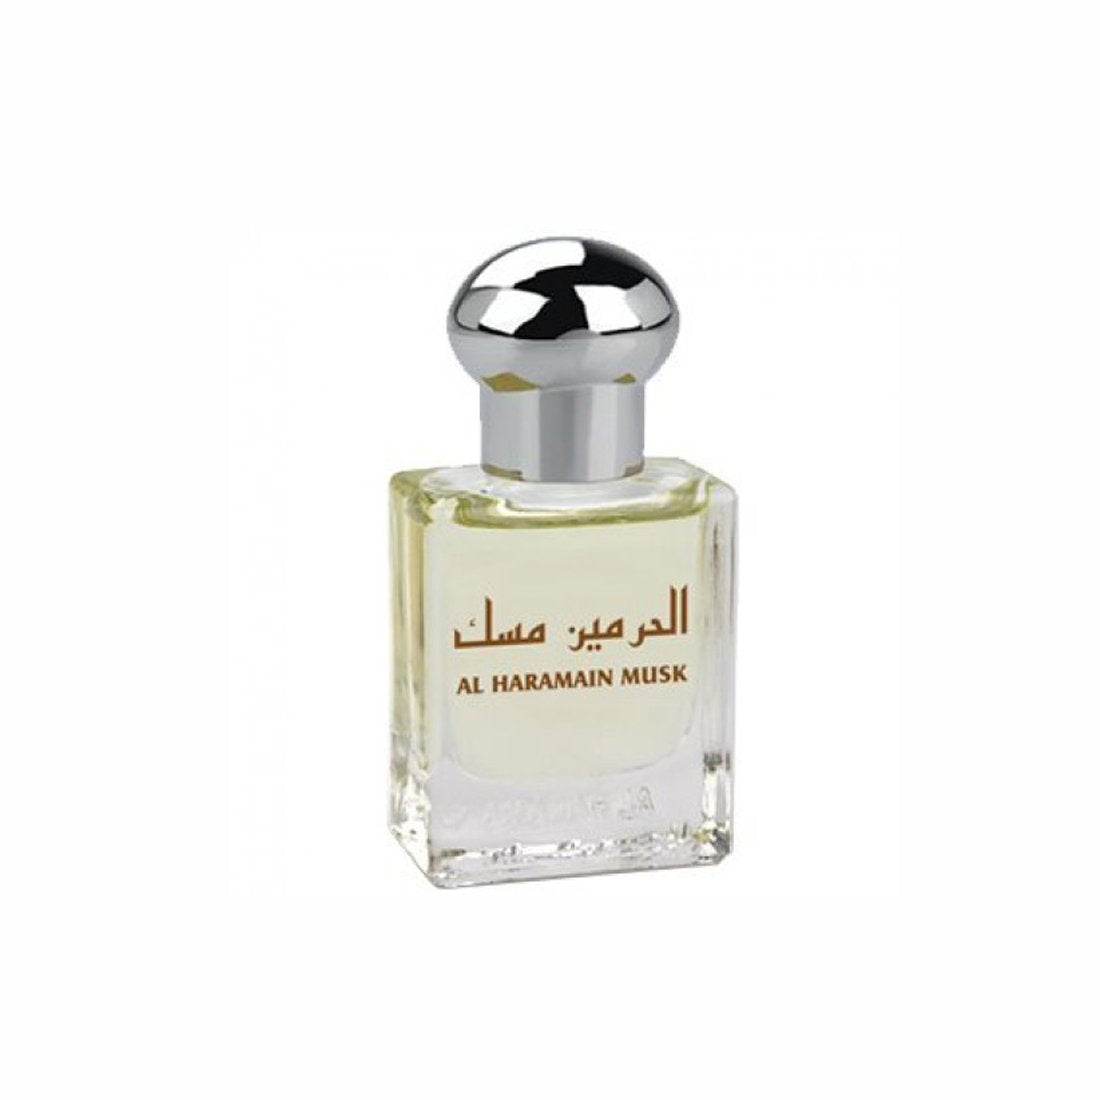 Al Haramain Musk Fragrance Pure Original Roll on Perfume Oil (Attar) - 15 ml